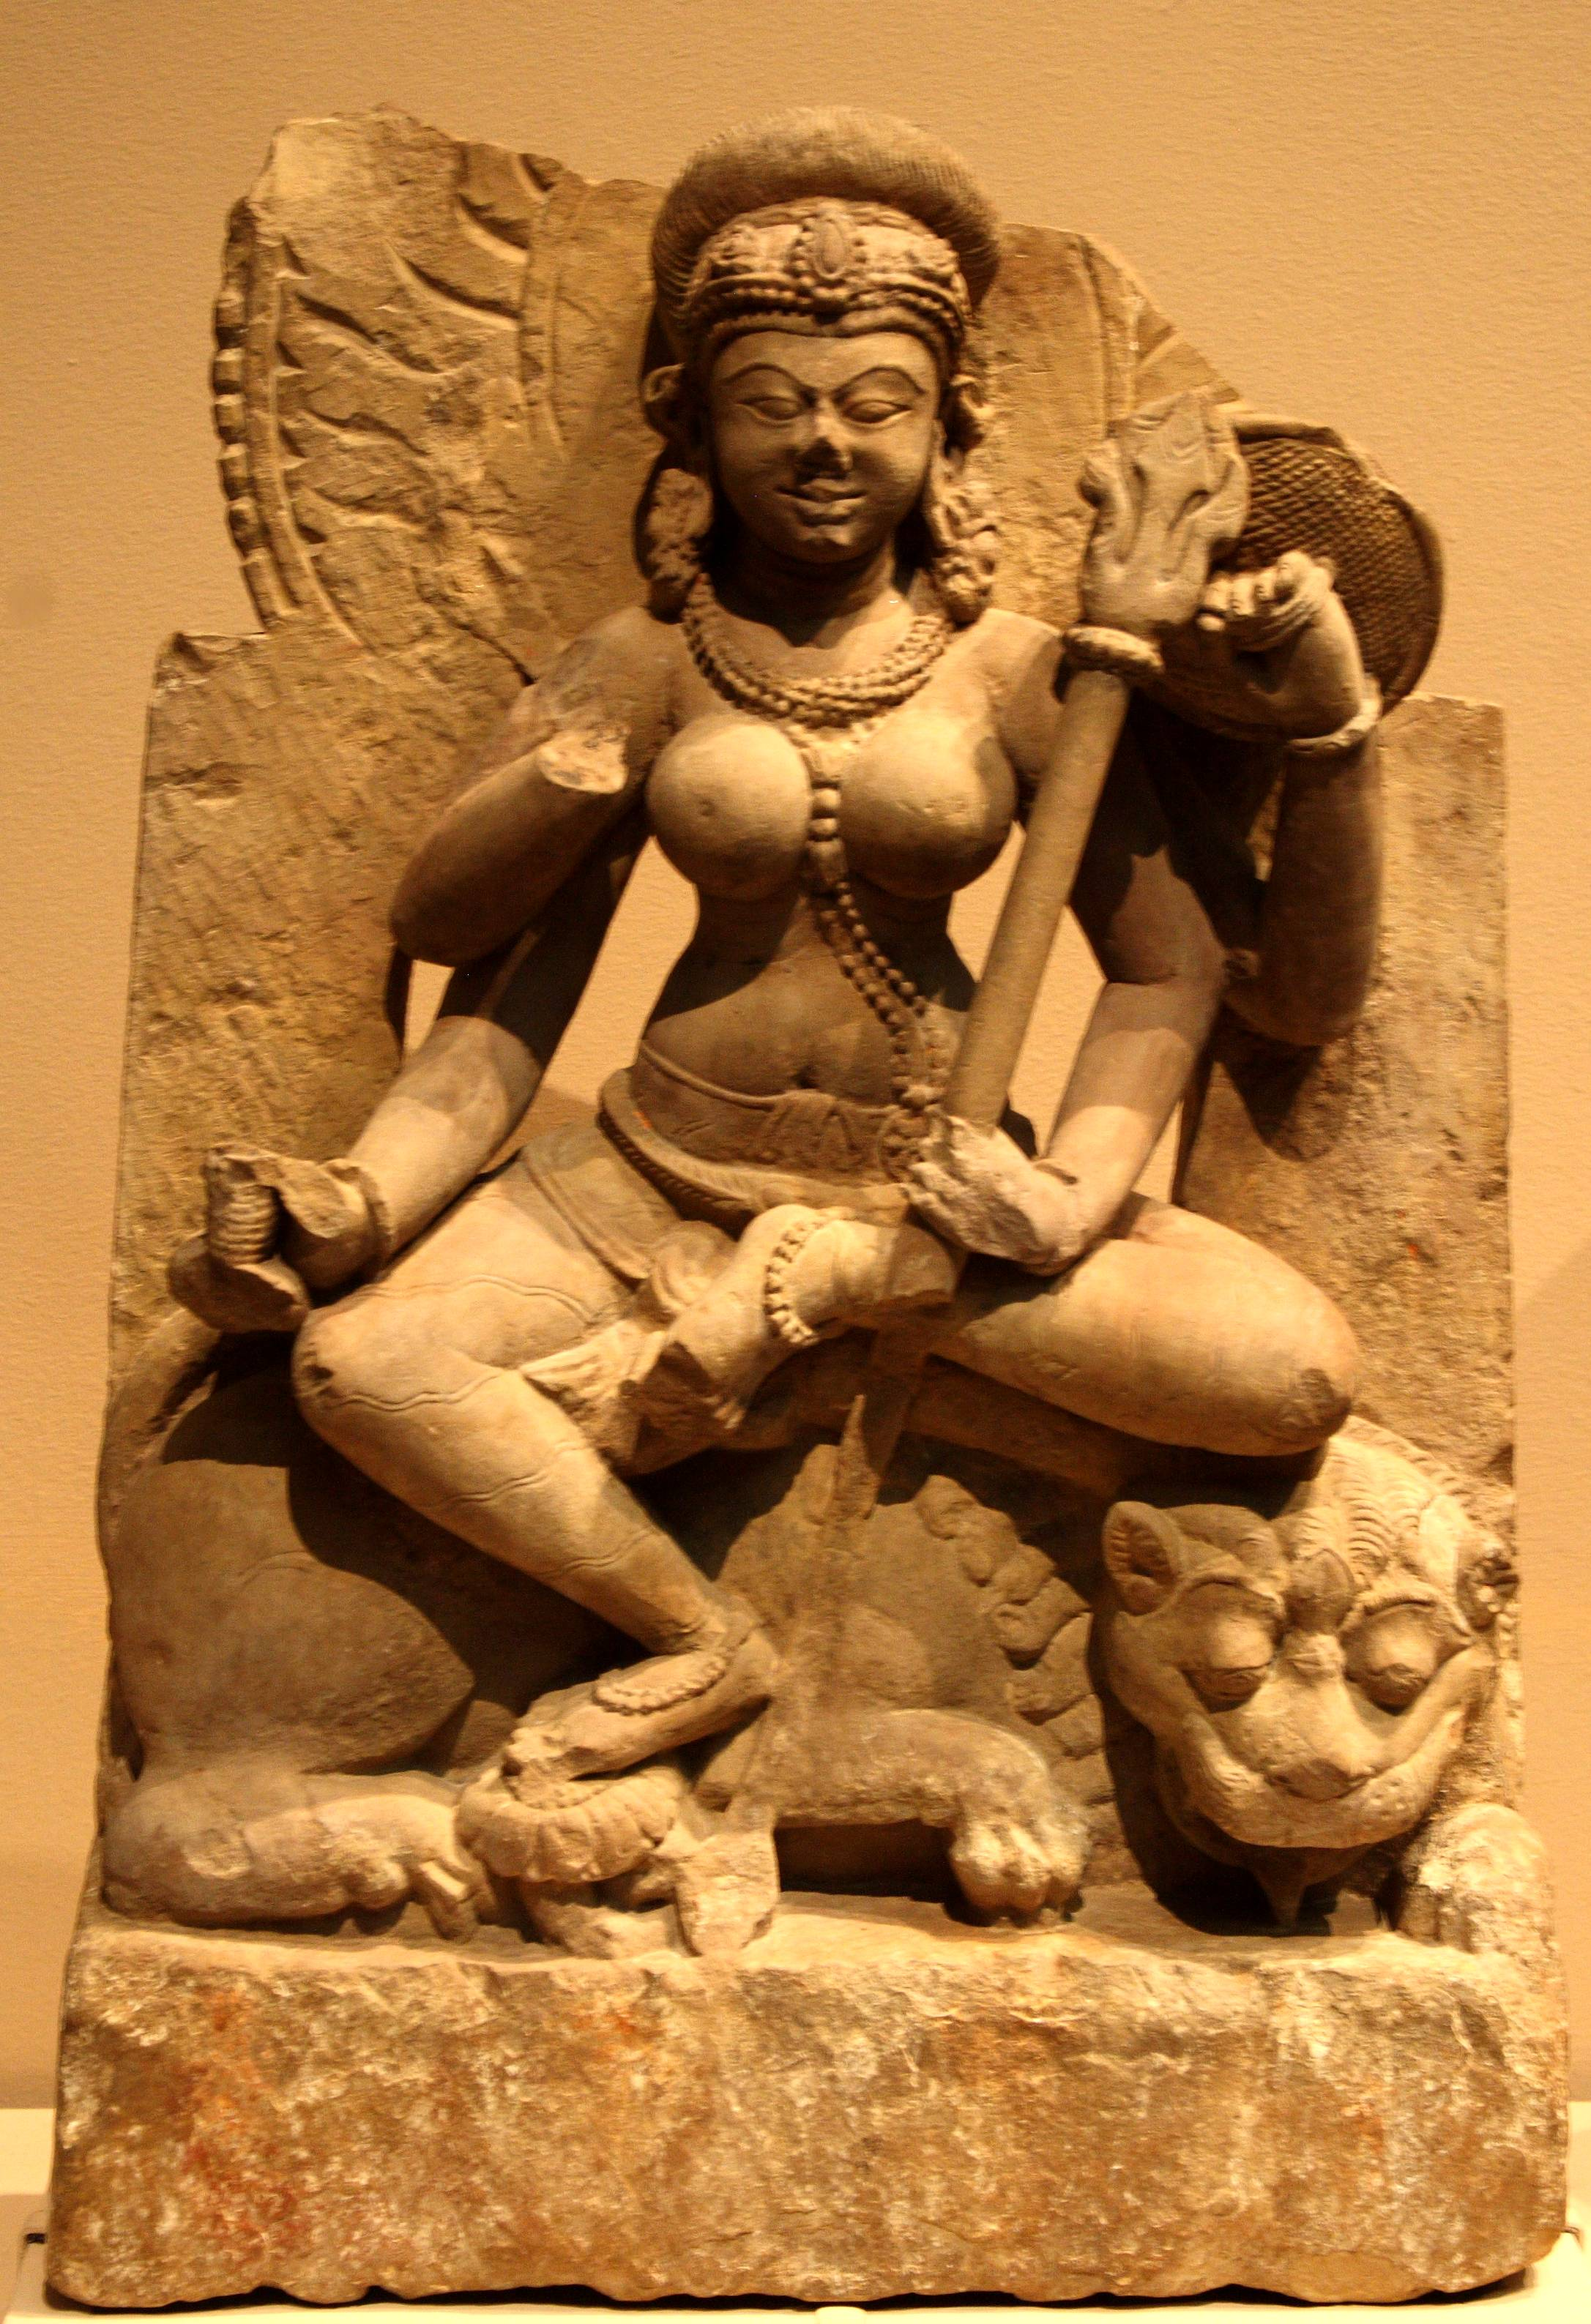 Indijsko vajarstvo - Page 2 A_deity_sculpture_in_the_Indian_Art_section_of_the_Met_New_York_City